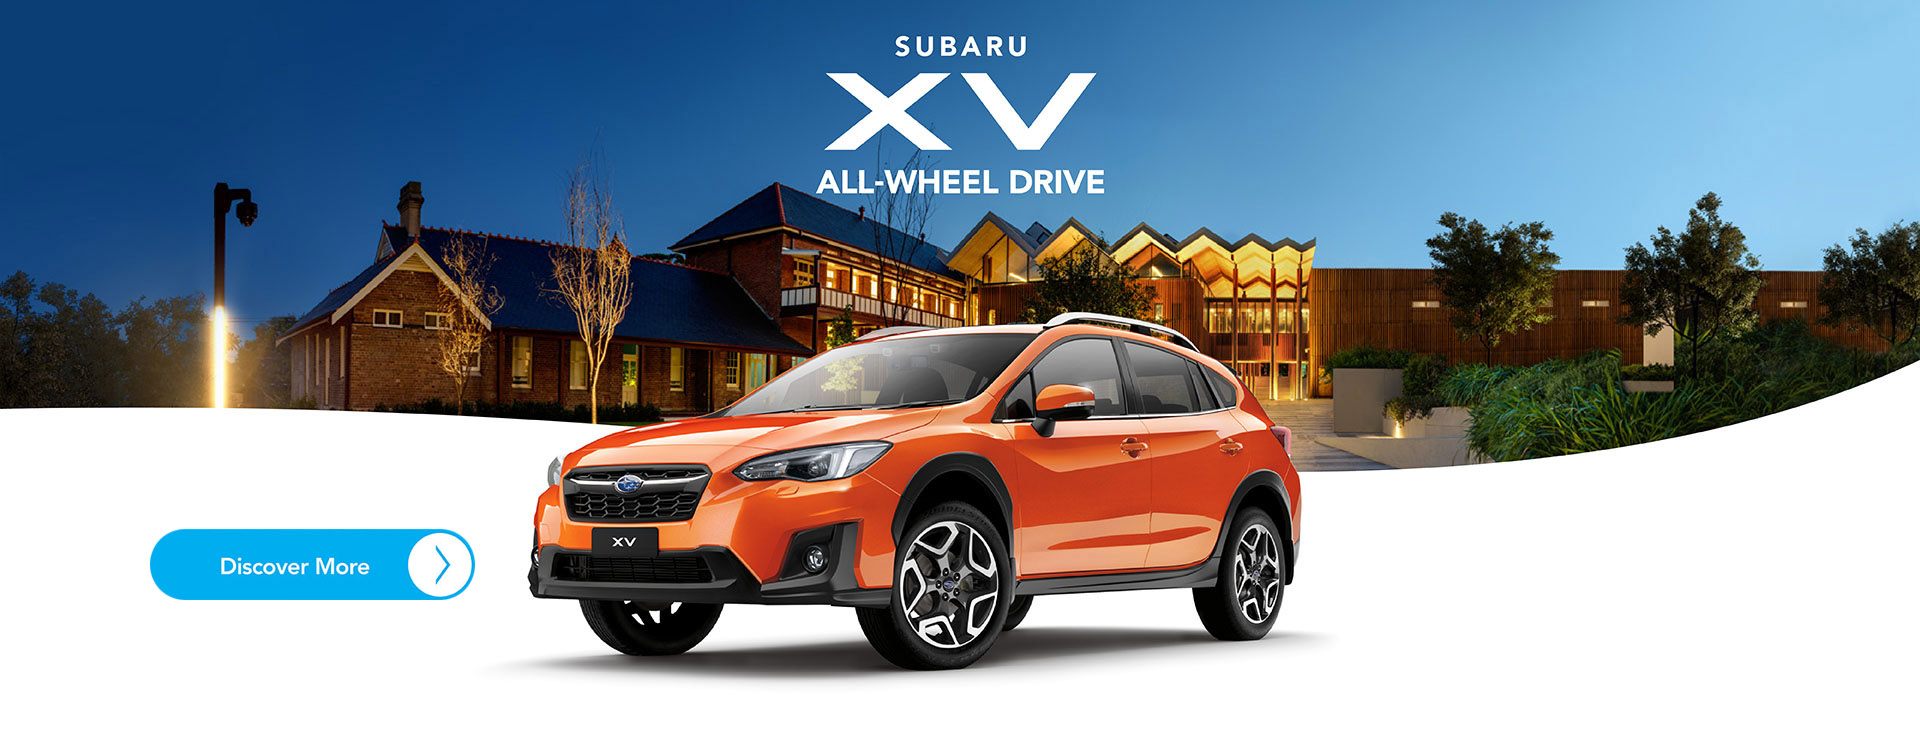 New Subaru XV, including Hybrid e-Boxer, now available at Trinity Subaru, Cairns. Test Drive Today!